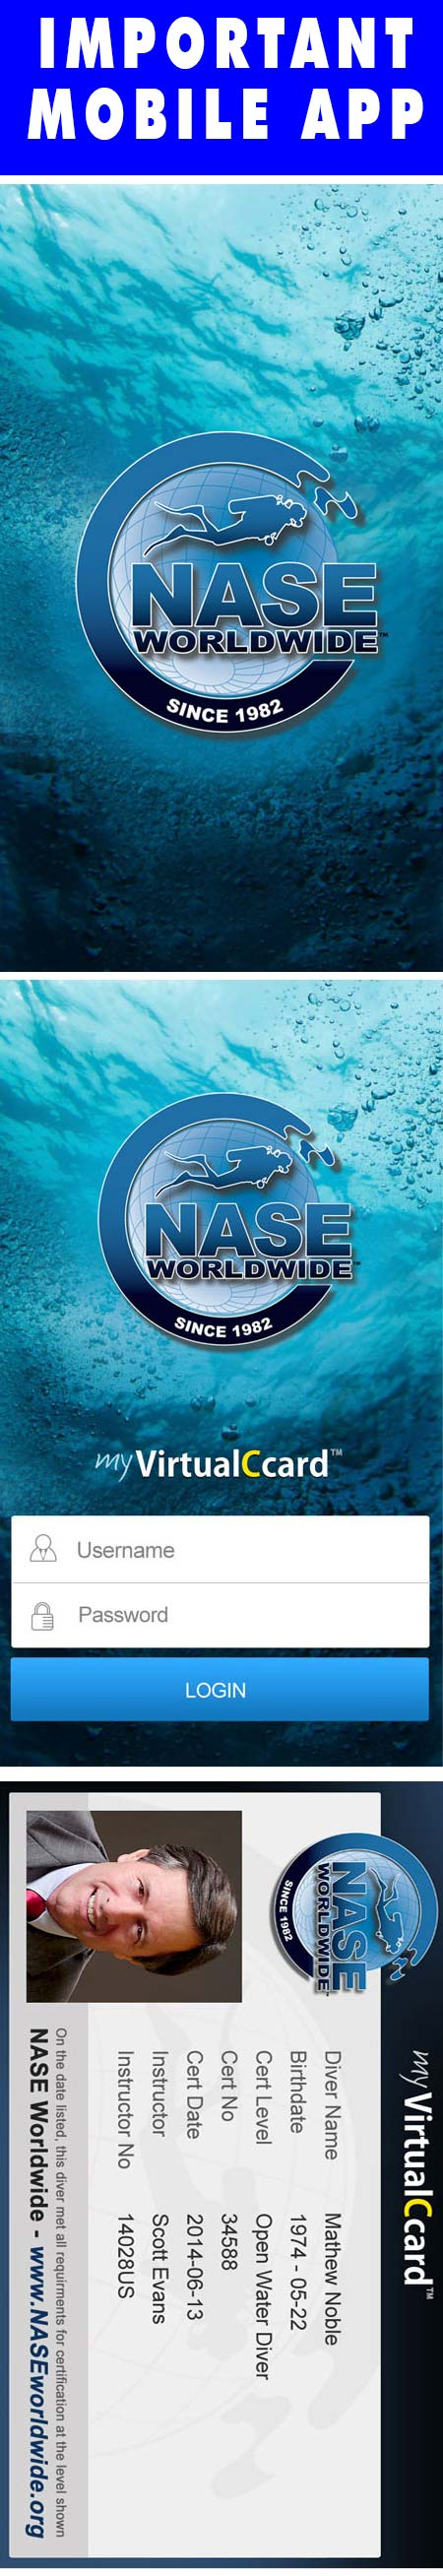 Never Forget Your Certification Card At Home Again The Nase